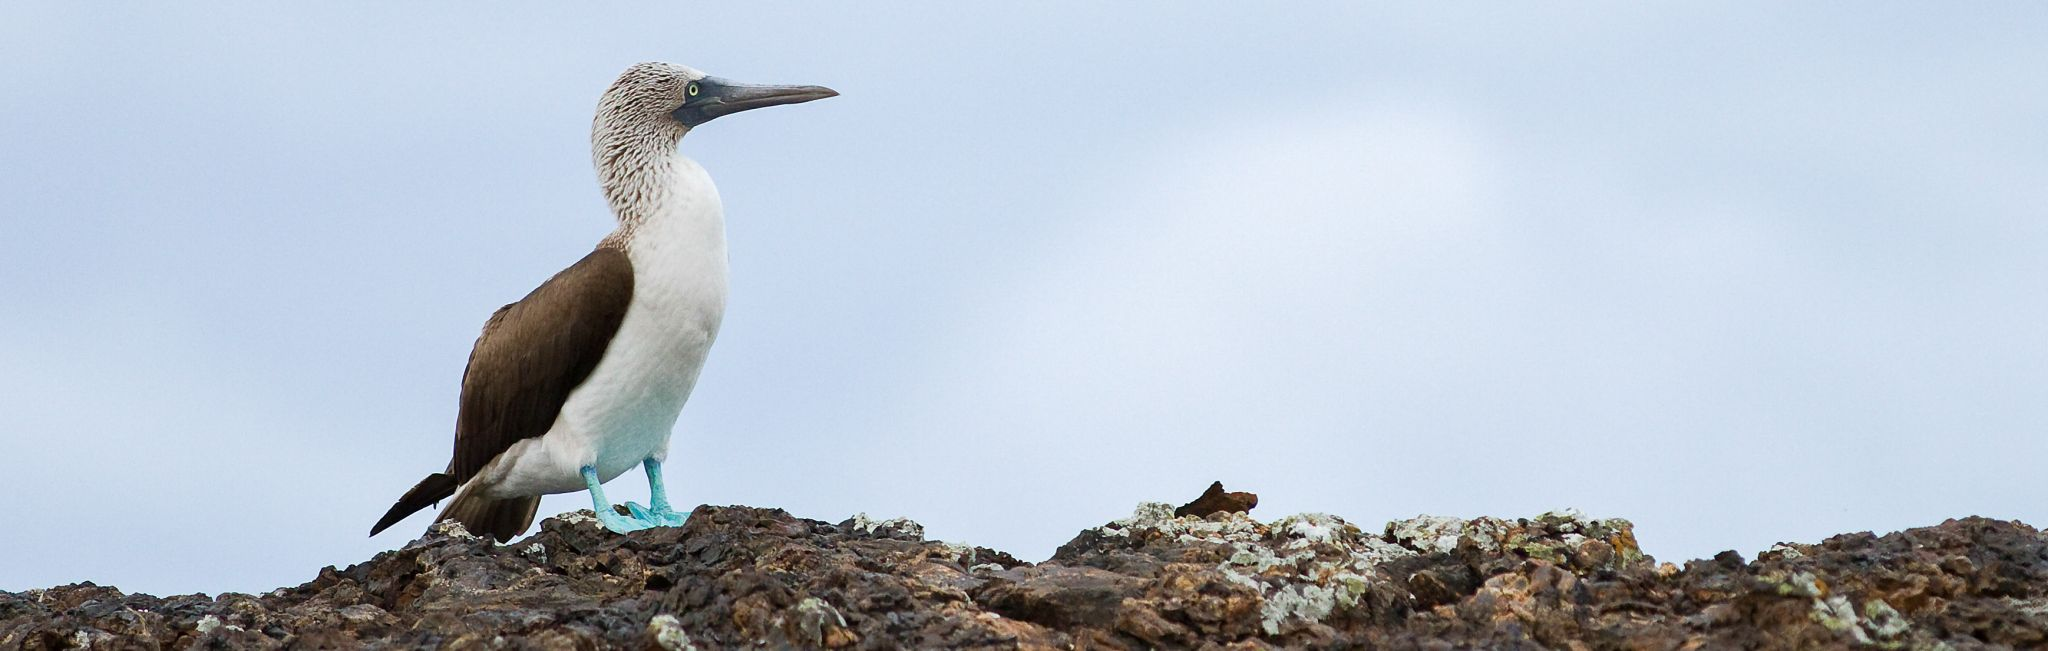 A blue-footed booby is a popular sight in the Galapagos Islands.